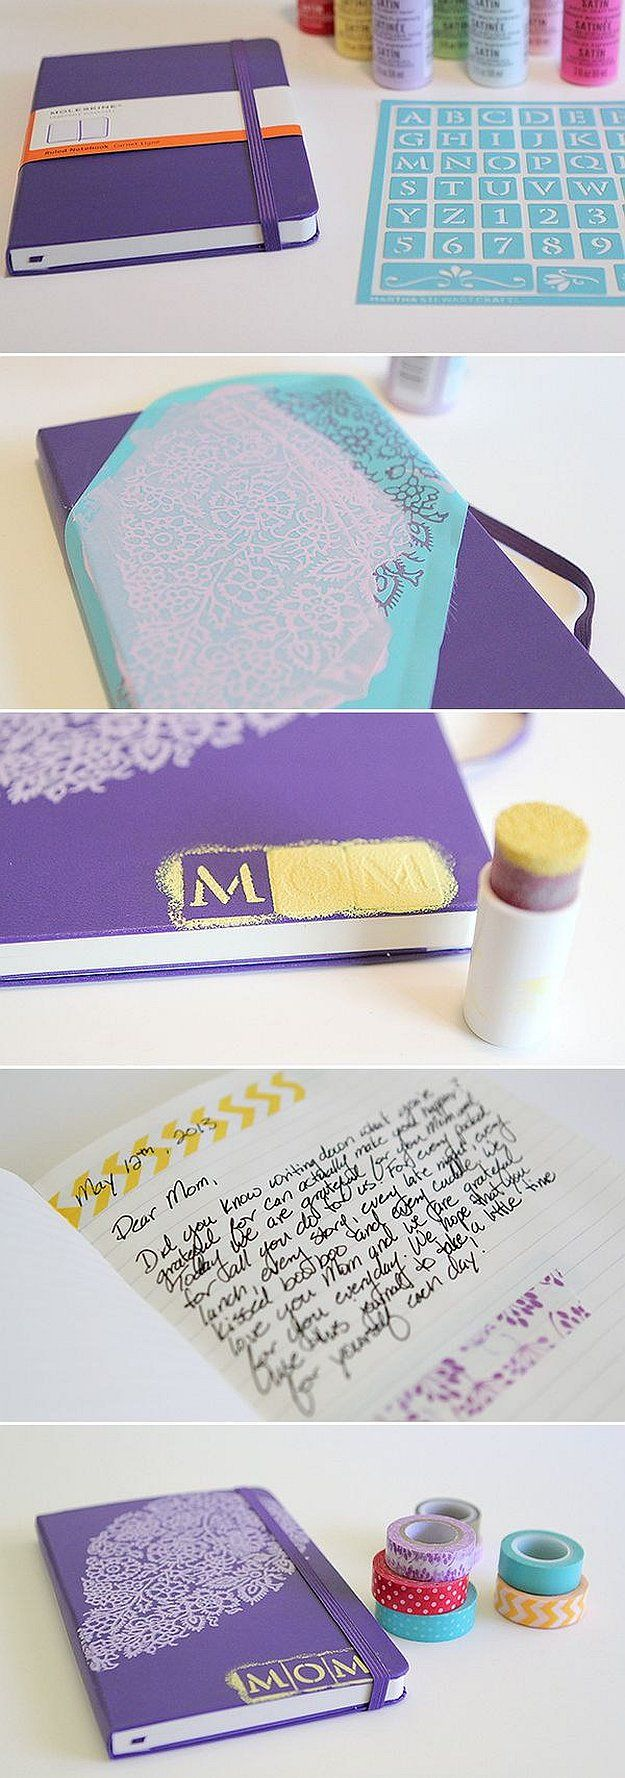 Give mom a meaningful gift with this DIY Birthday Gift Ideas by DIY Ready at http://diyready.com/ 10-diy-birthday-gift-ideas-for-mom/